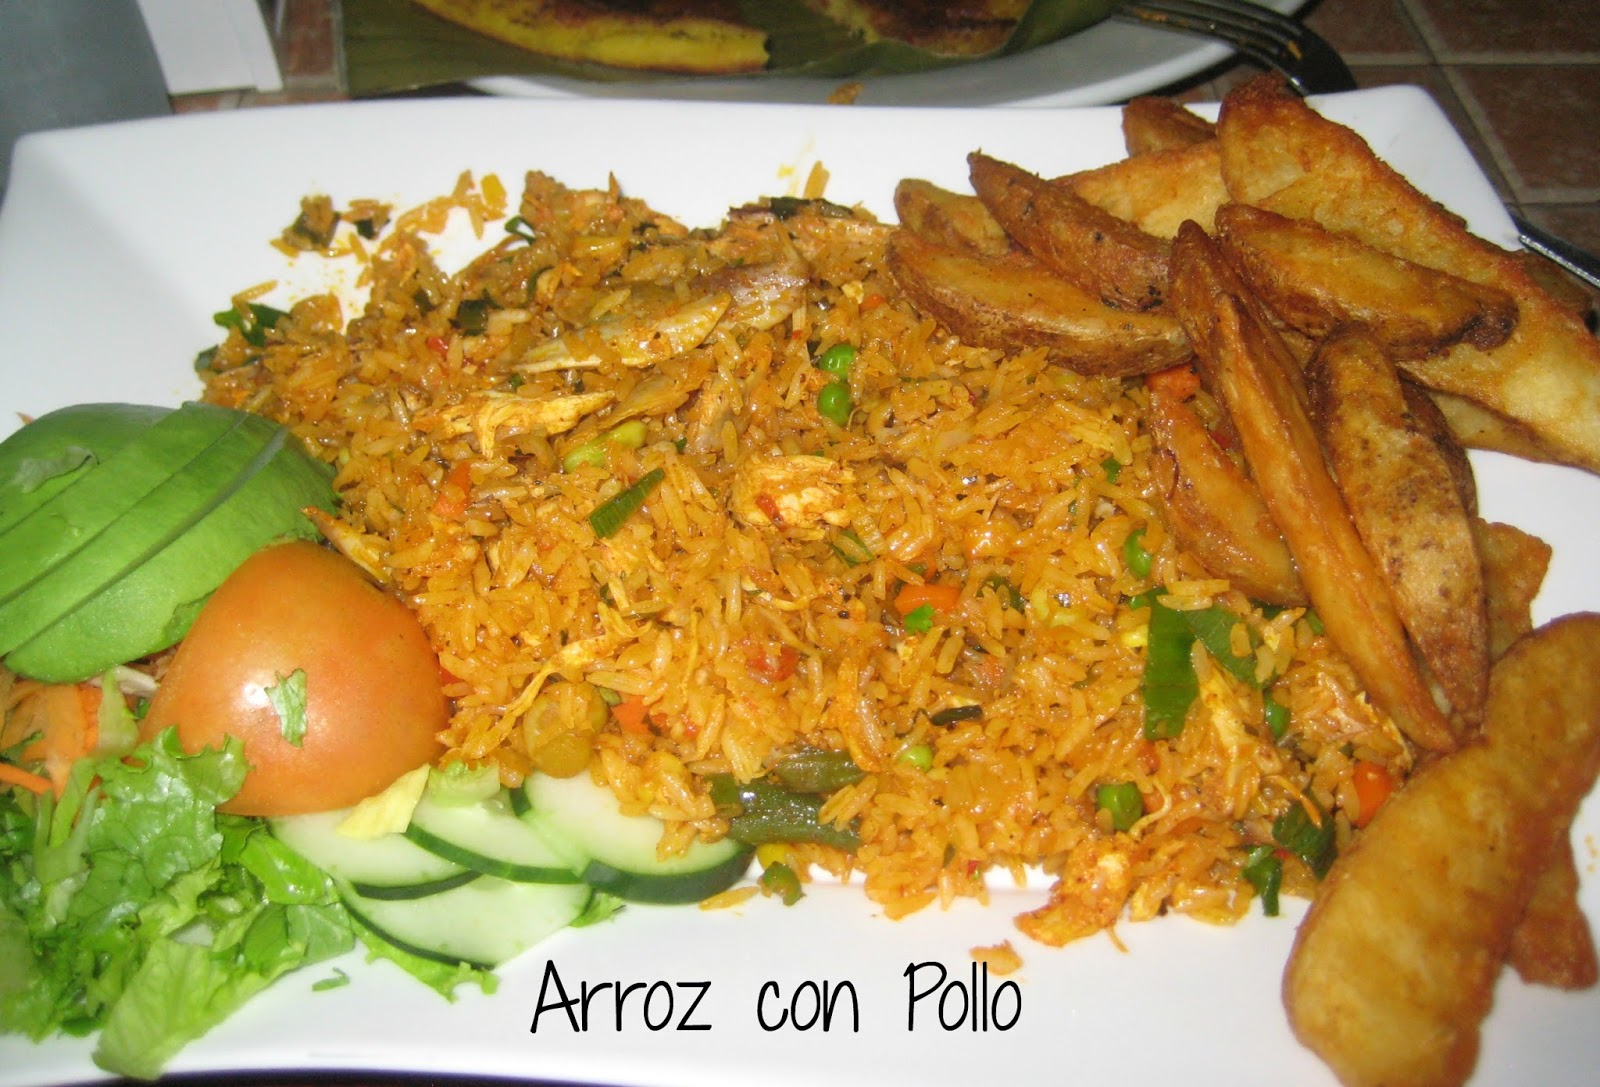 It is more like Nicaraguan arroz con pollo.